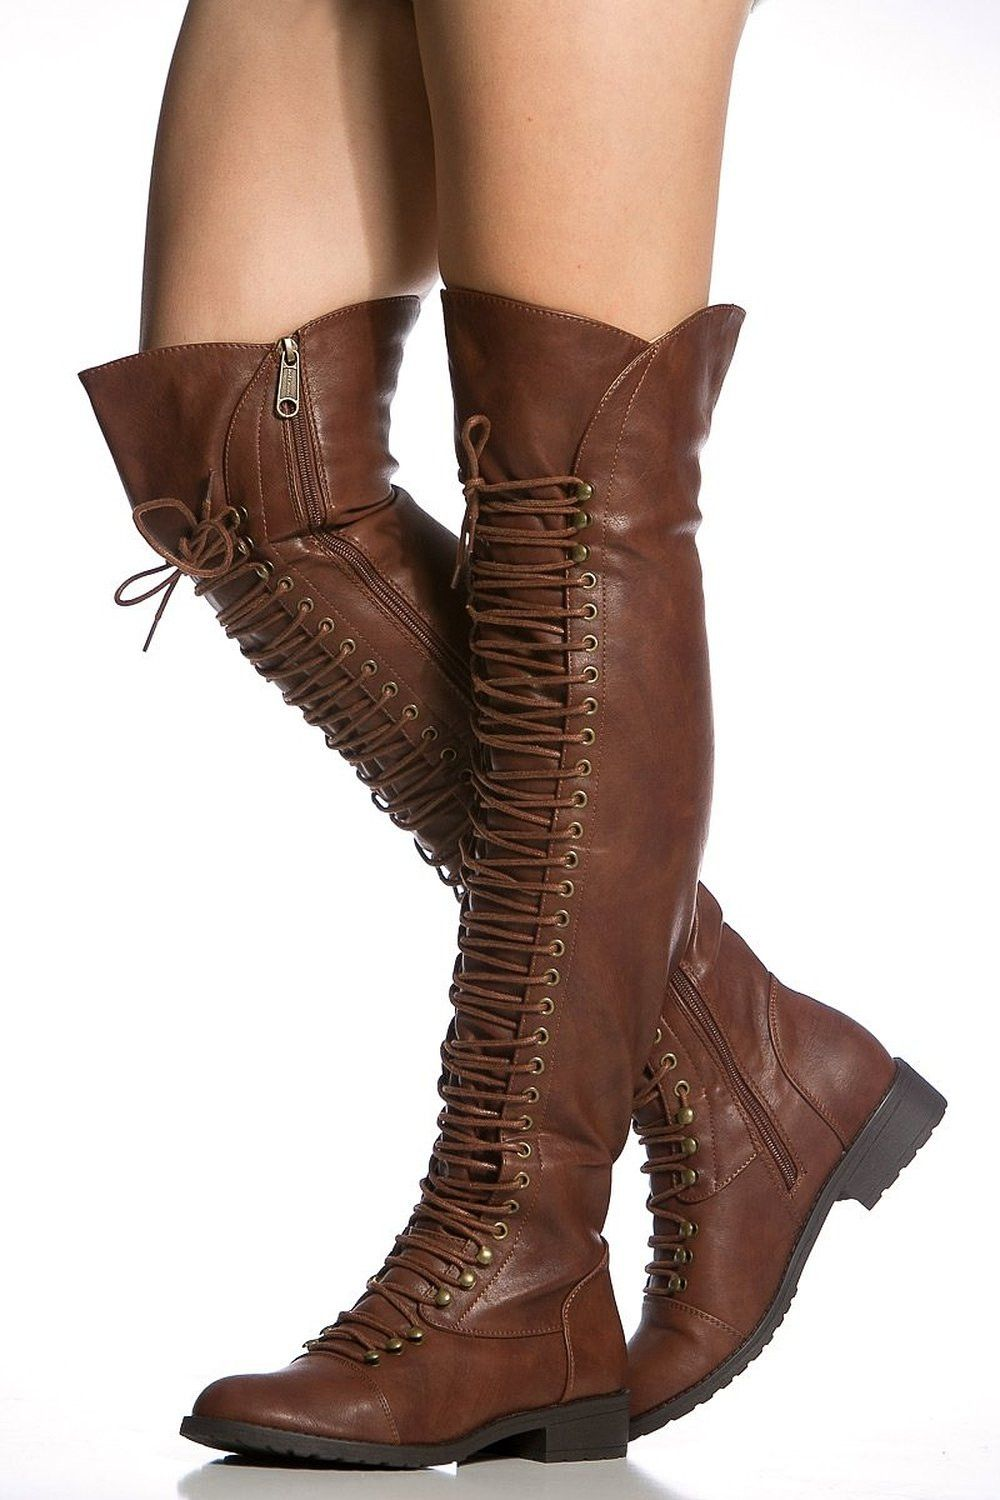 Brown Lace up Boots Knee High Boots Round Toe Flat Fashion Boots